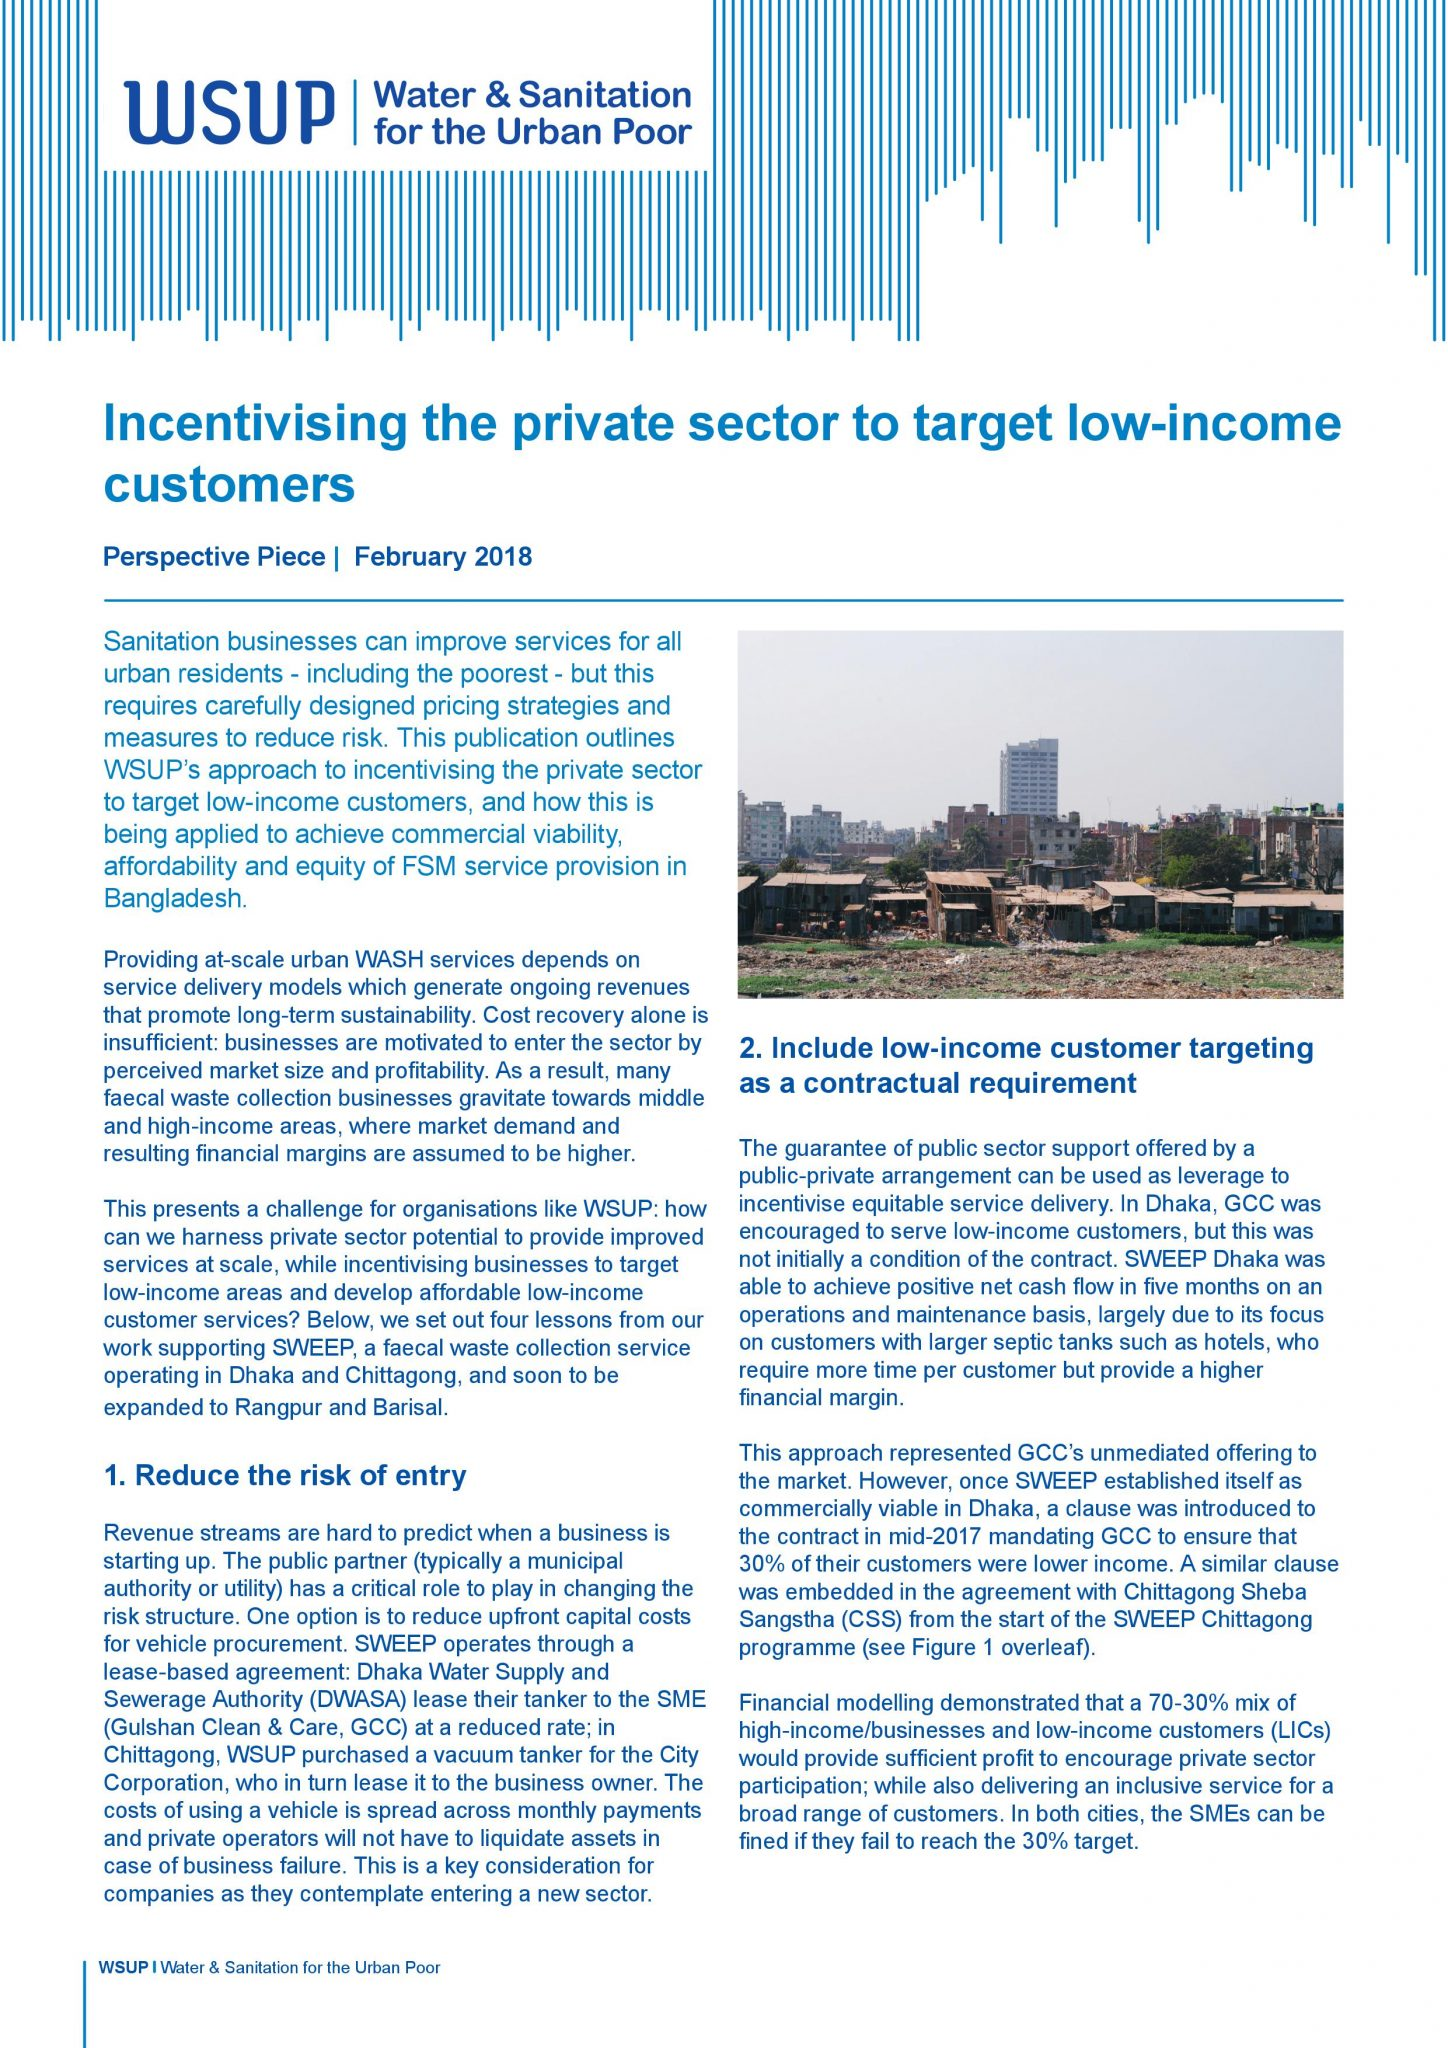 Incentivising the private sector to target low-income customers